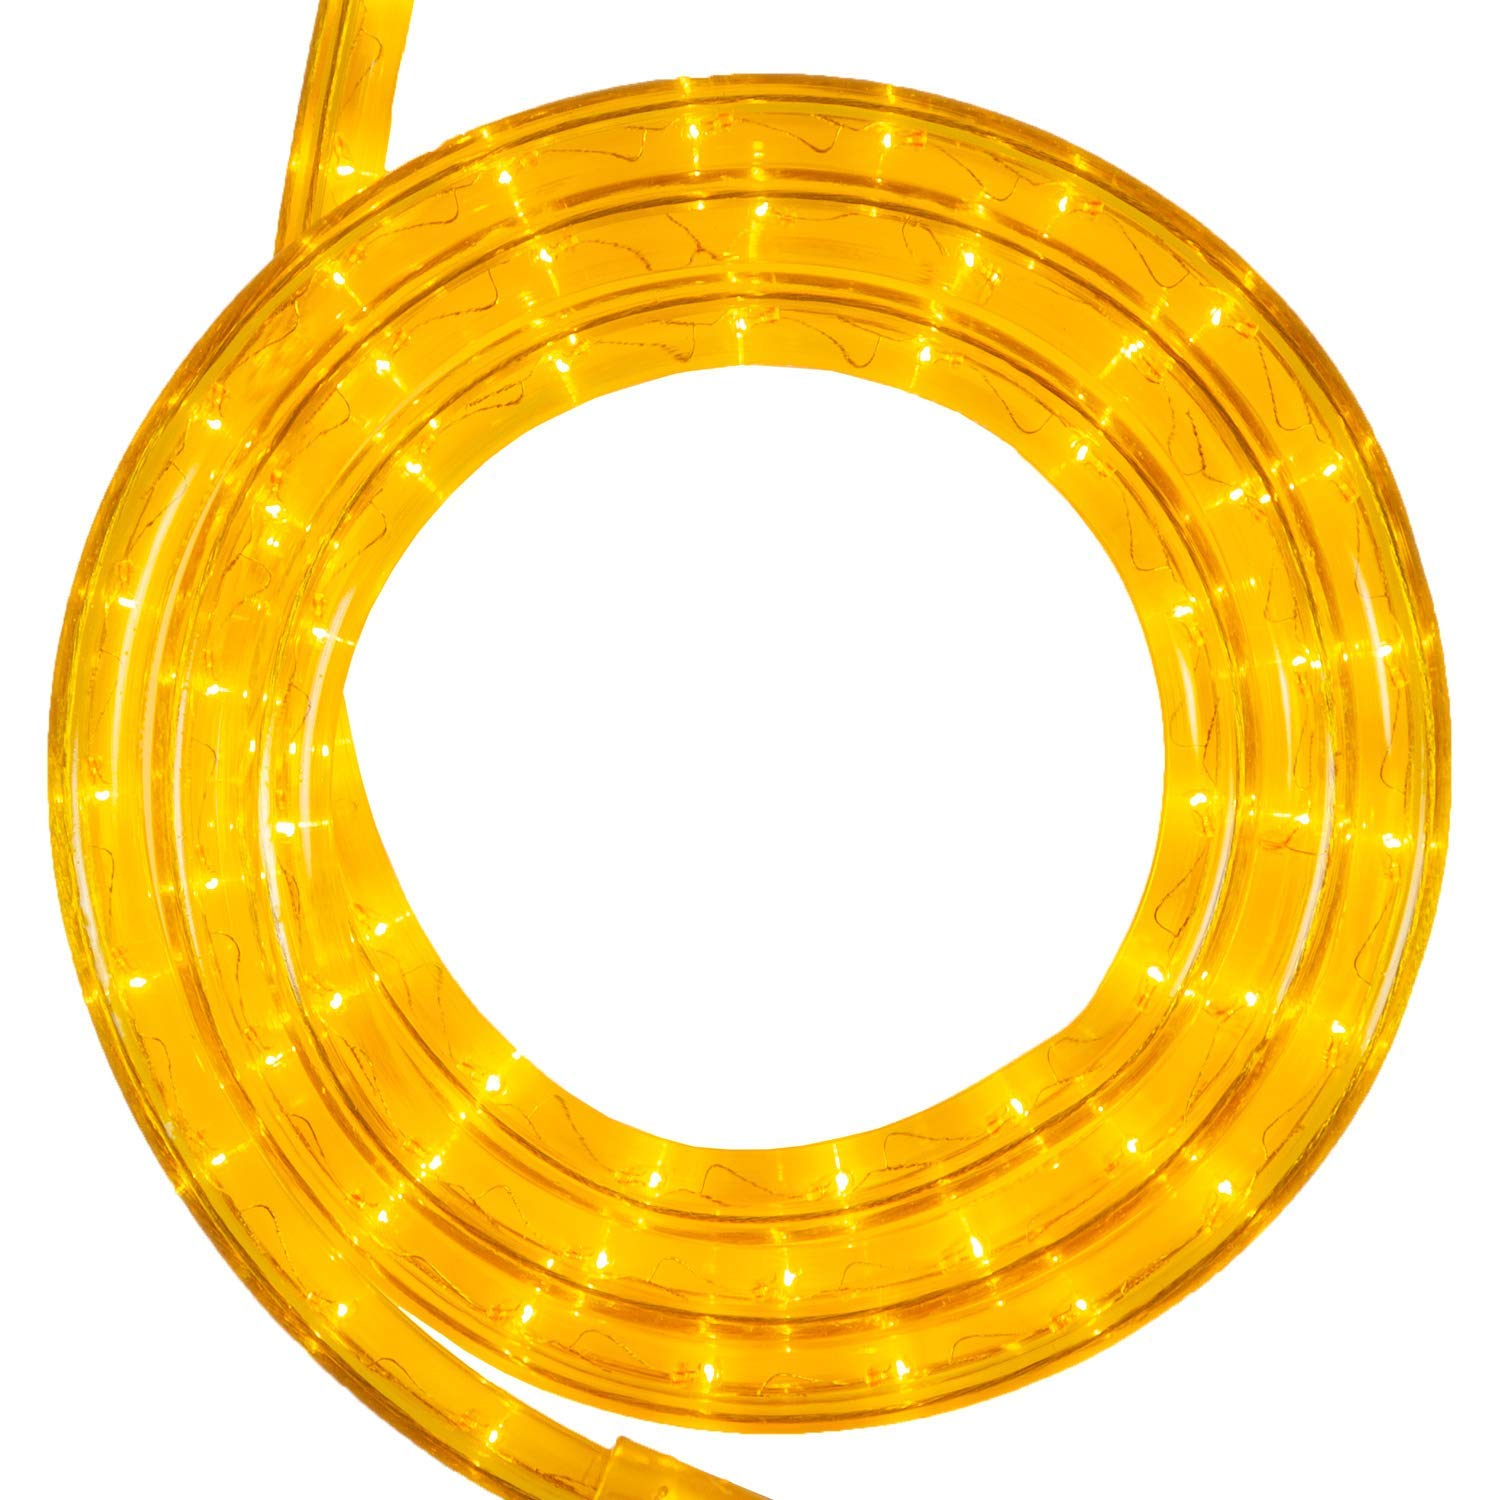 Wintergreen Lighting Incandescent Yellow Rope Light Kit, Includes Power Cord, 120V, ½ Inch, 2-Wire (18', Yellow)